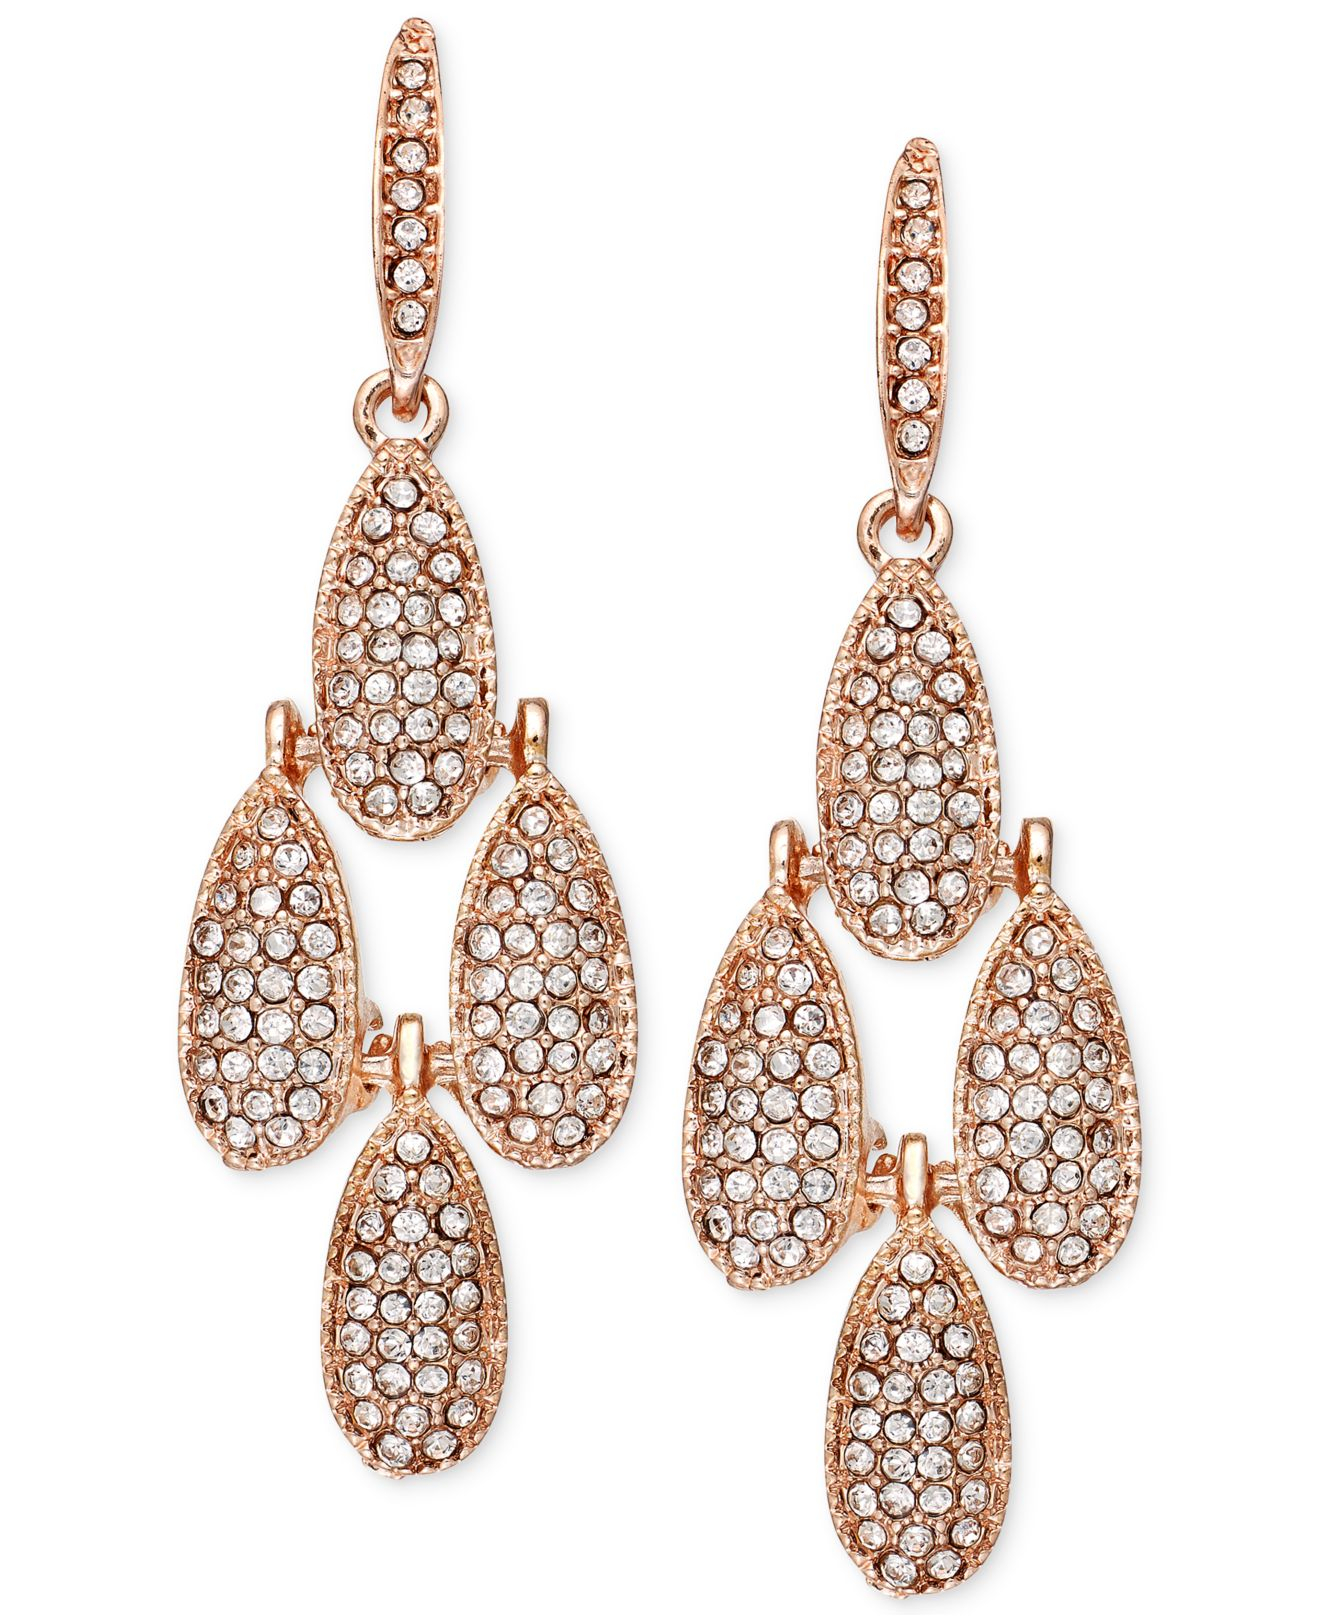 Chandelier earrings gold tone beautify themselves with earrings